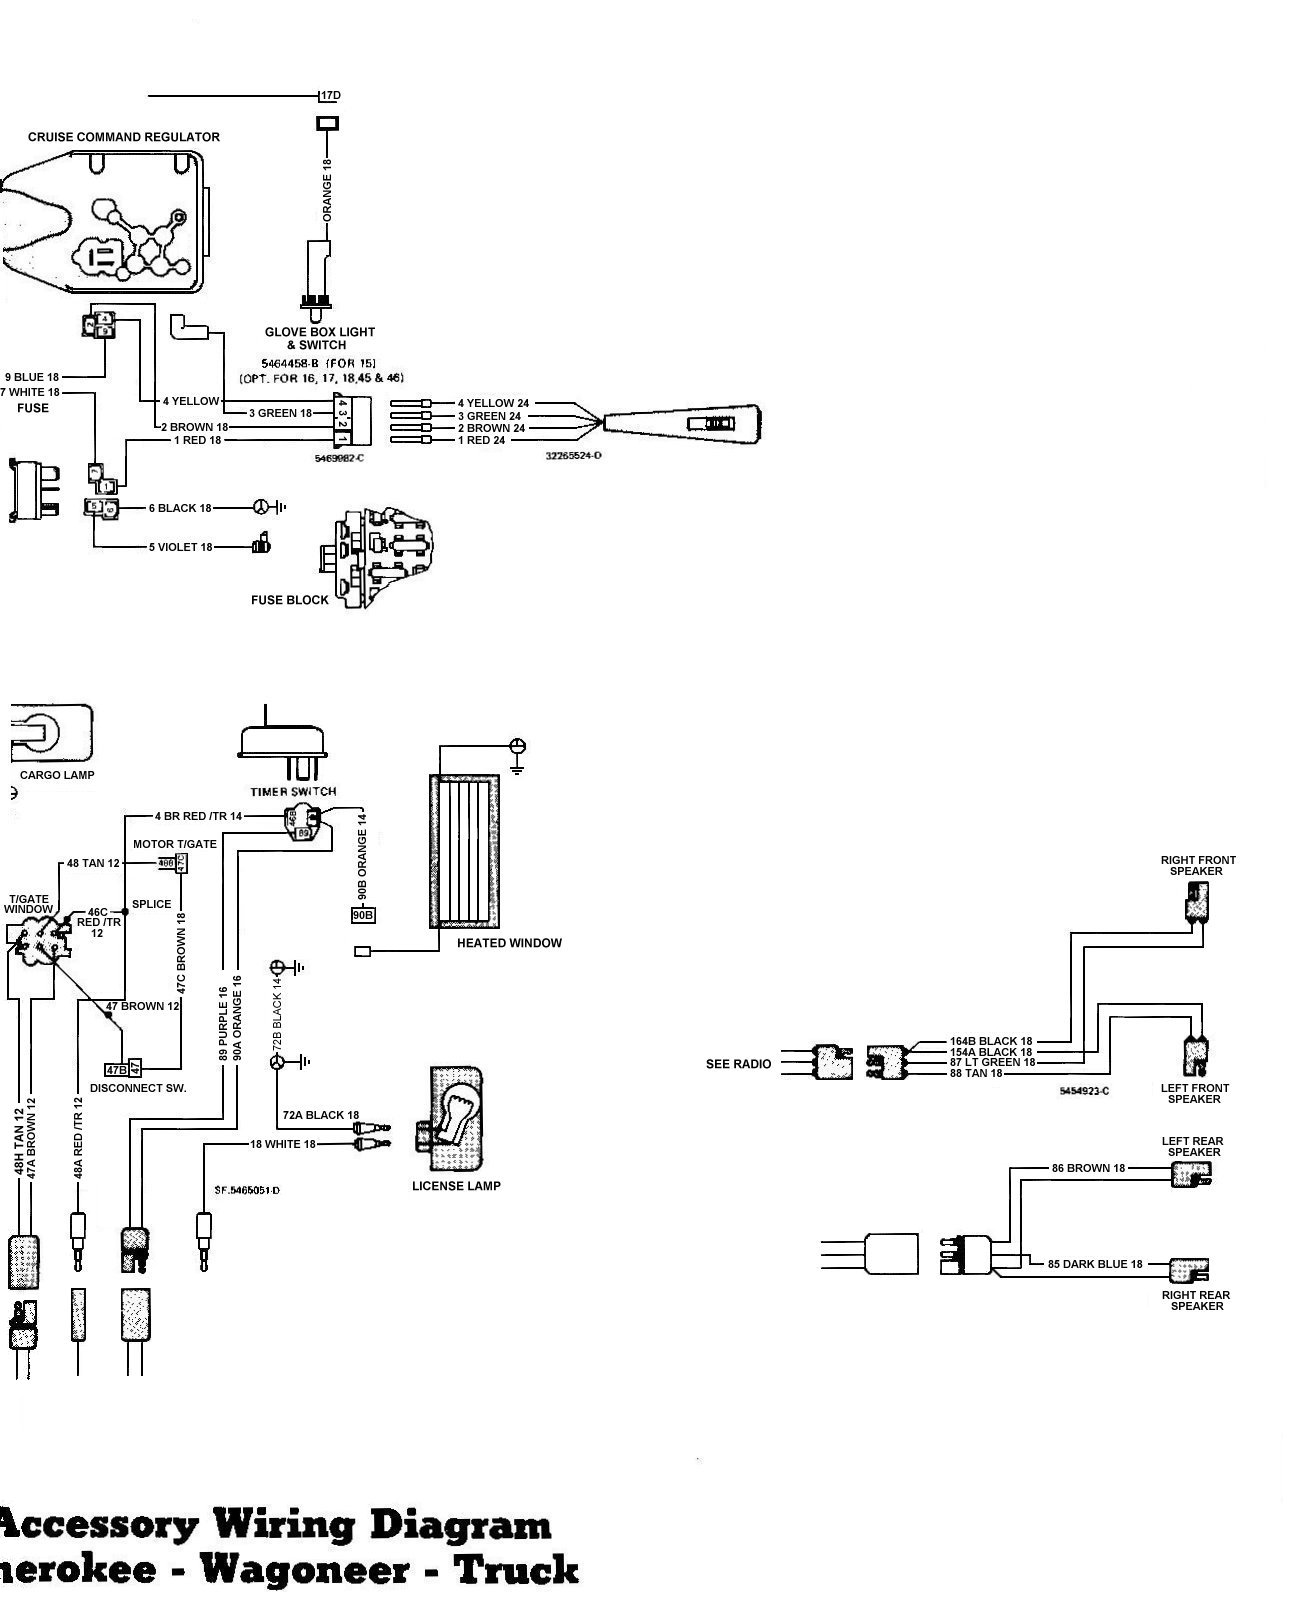 wiring accessories page 2